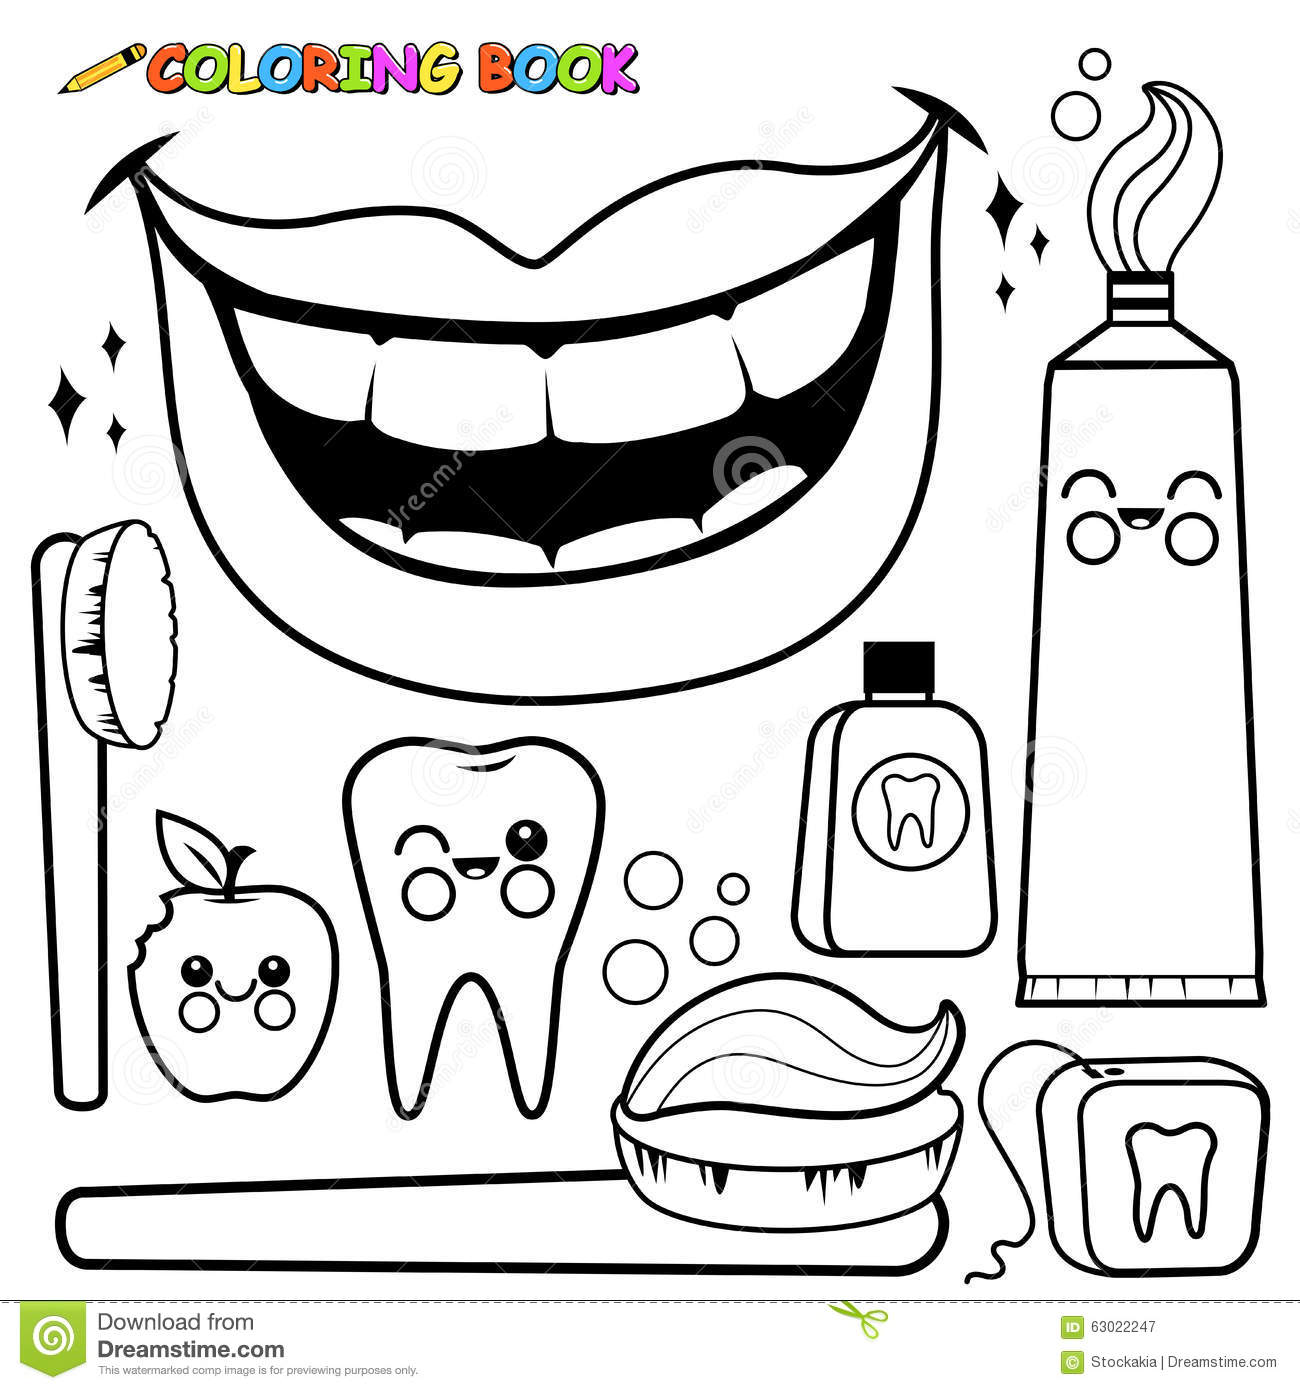 Coloring Page Dental Hygiene Vector Set Stock Vector - Image: 63022247